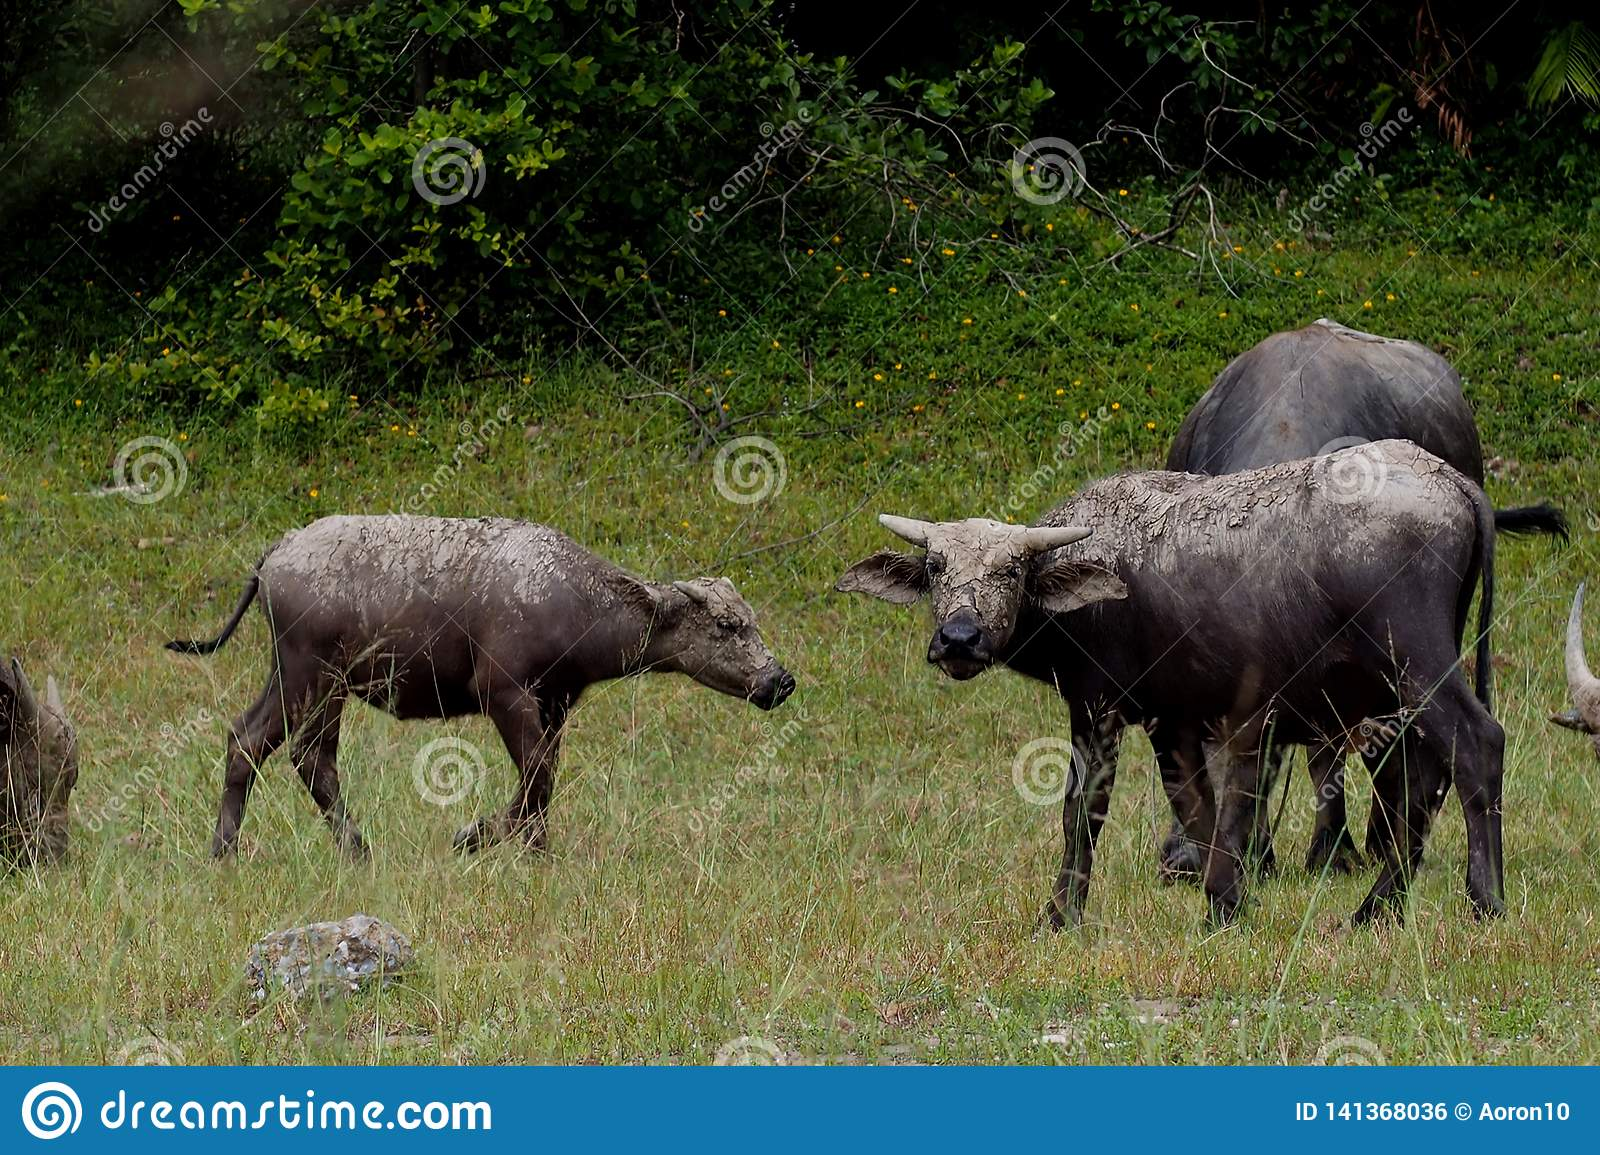 Buffalo on the mud and eating grass in Grazing near the wild